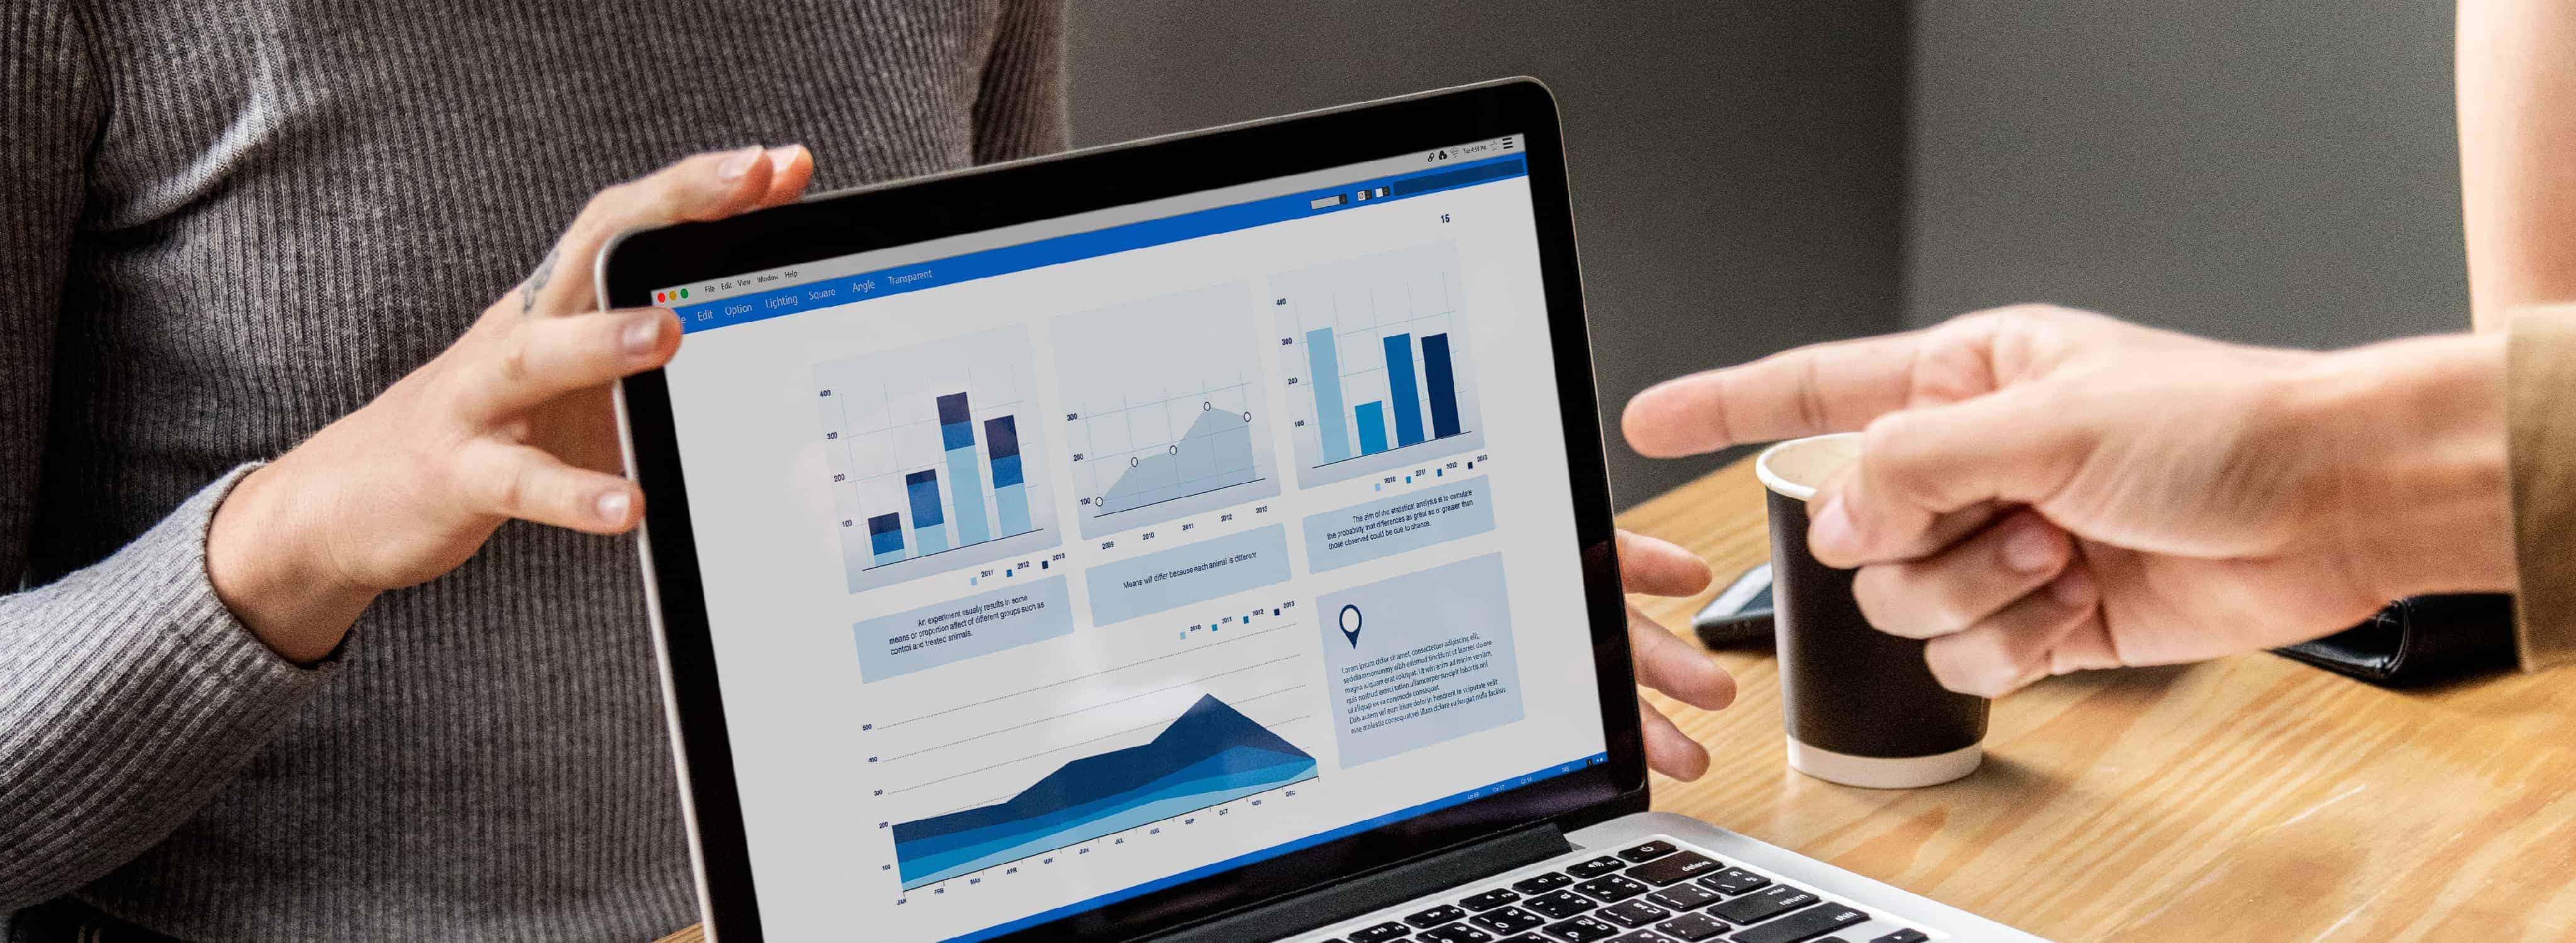 Everything you should know about business analysis